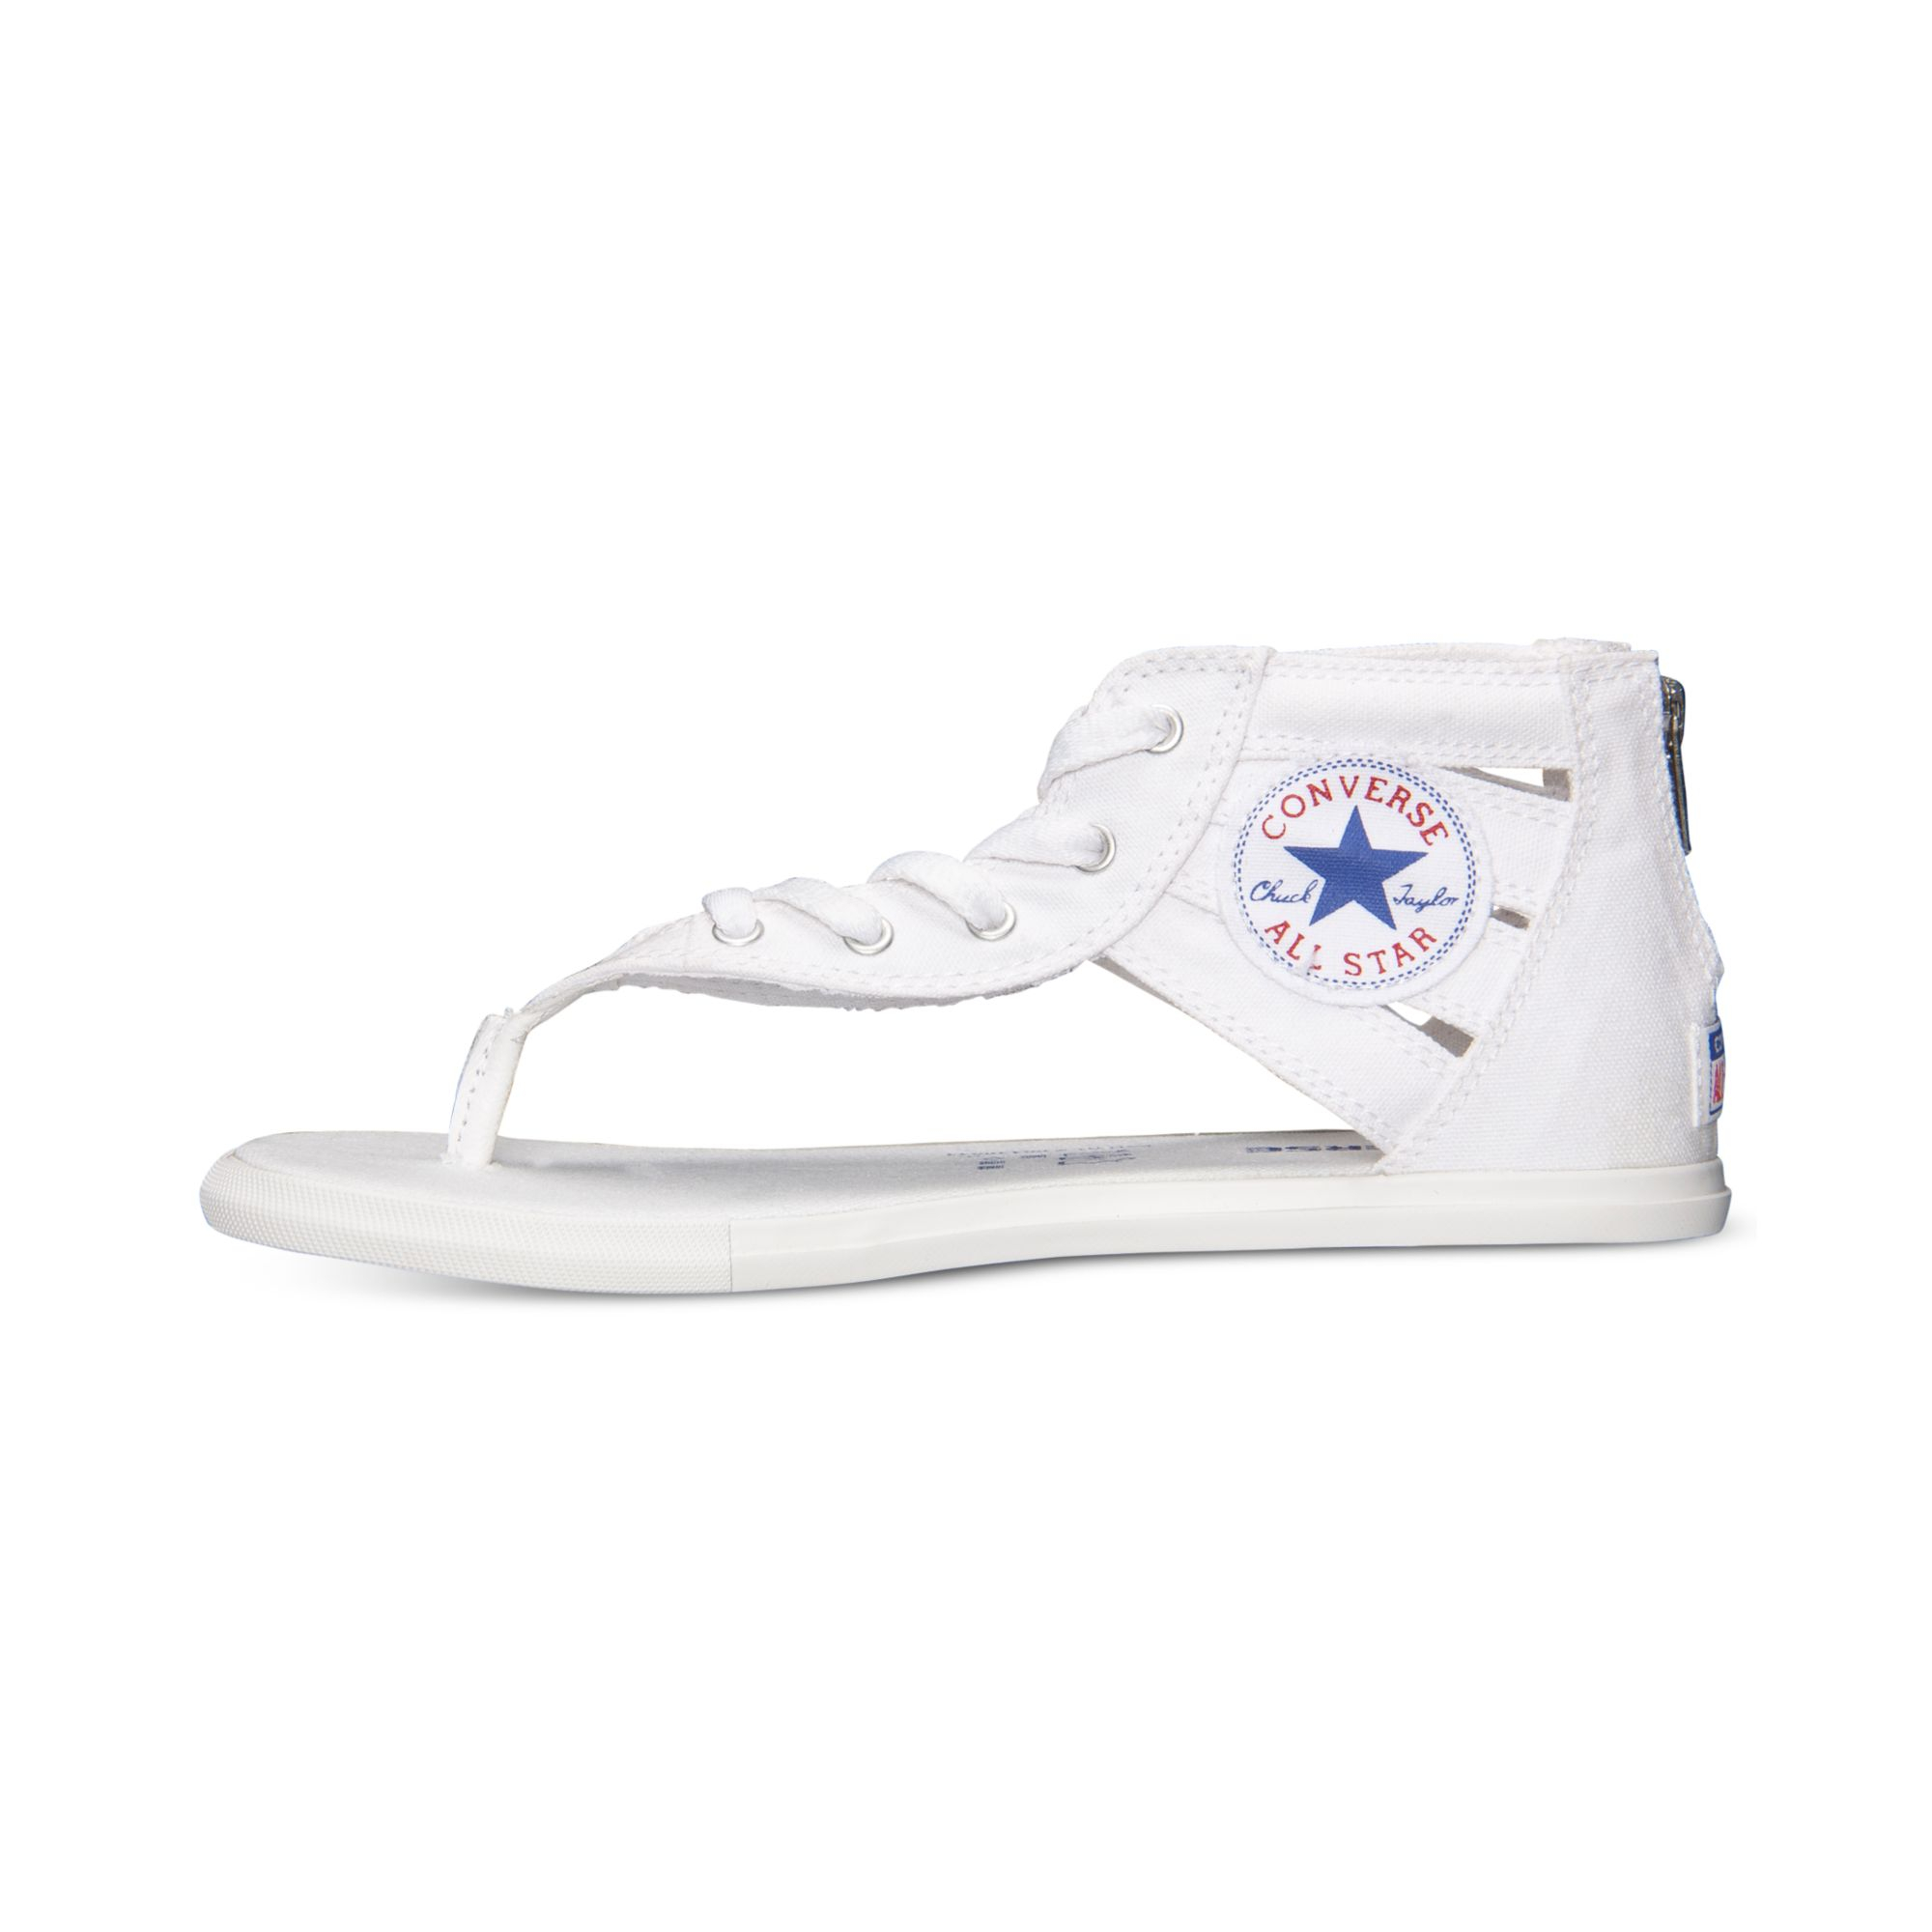 Lyst - Converse Women s Chuck Taylor Gladiator Thong Sandals From ... a86dc9a3d